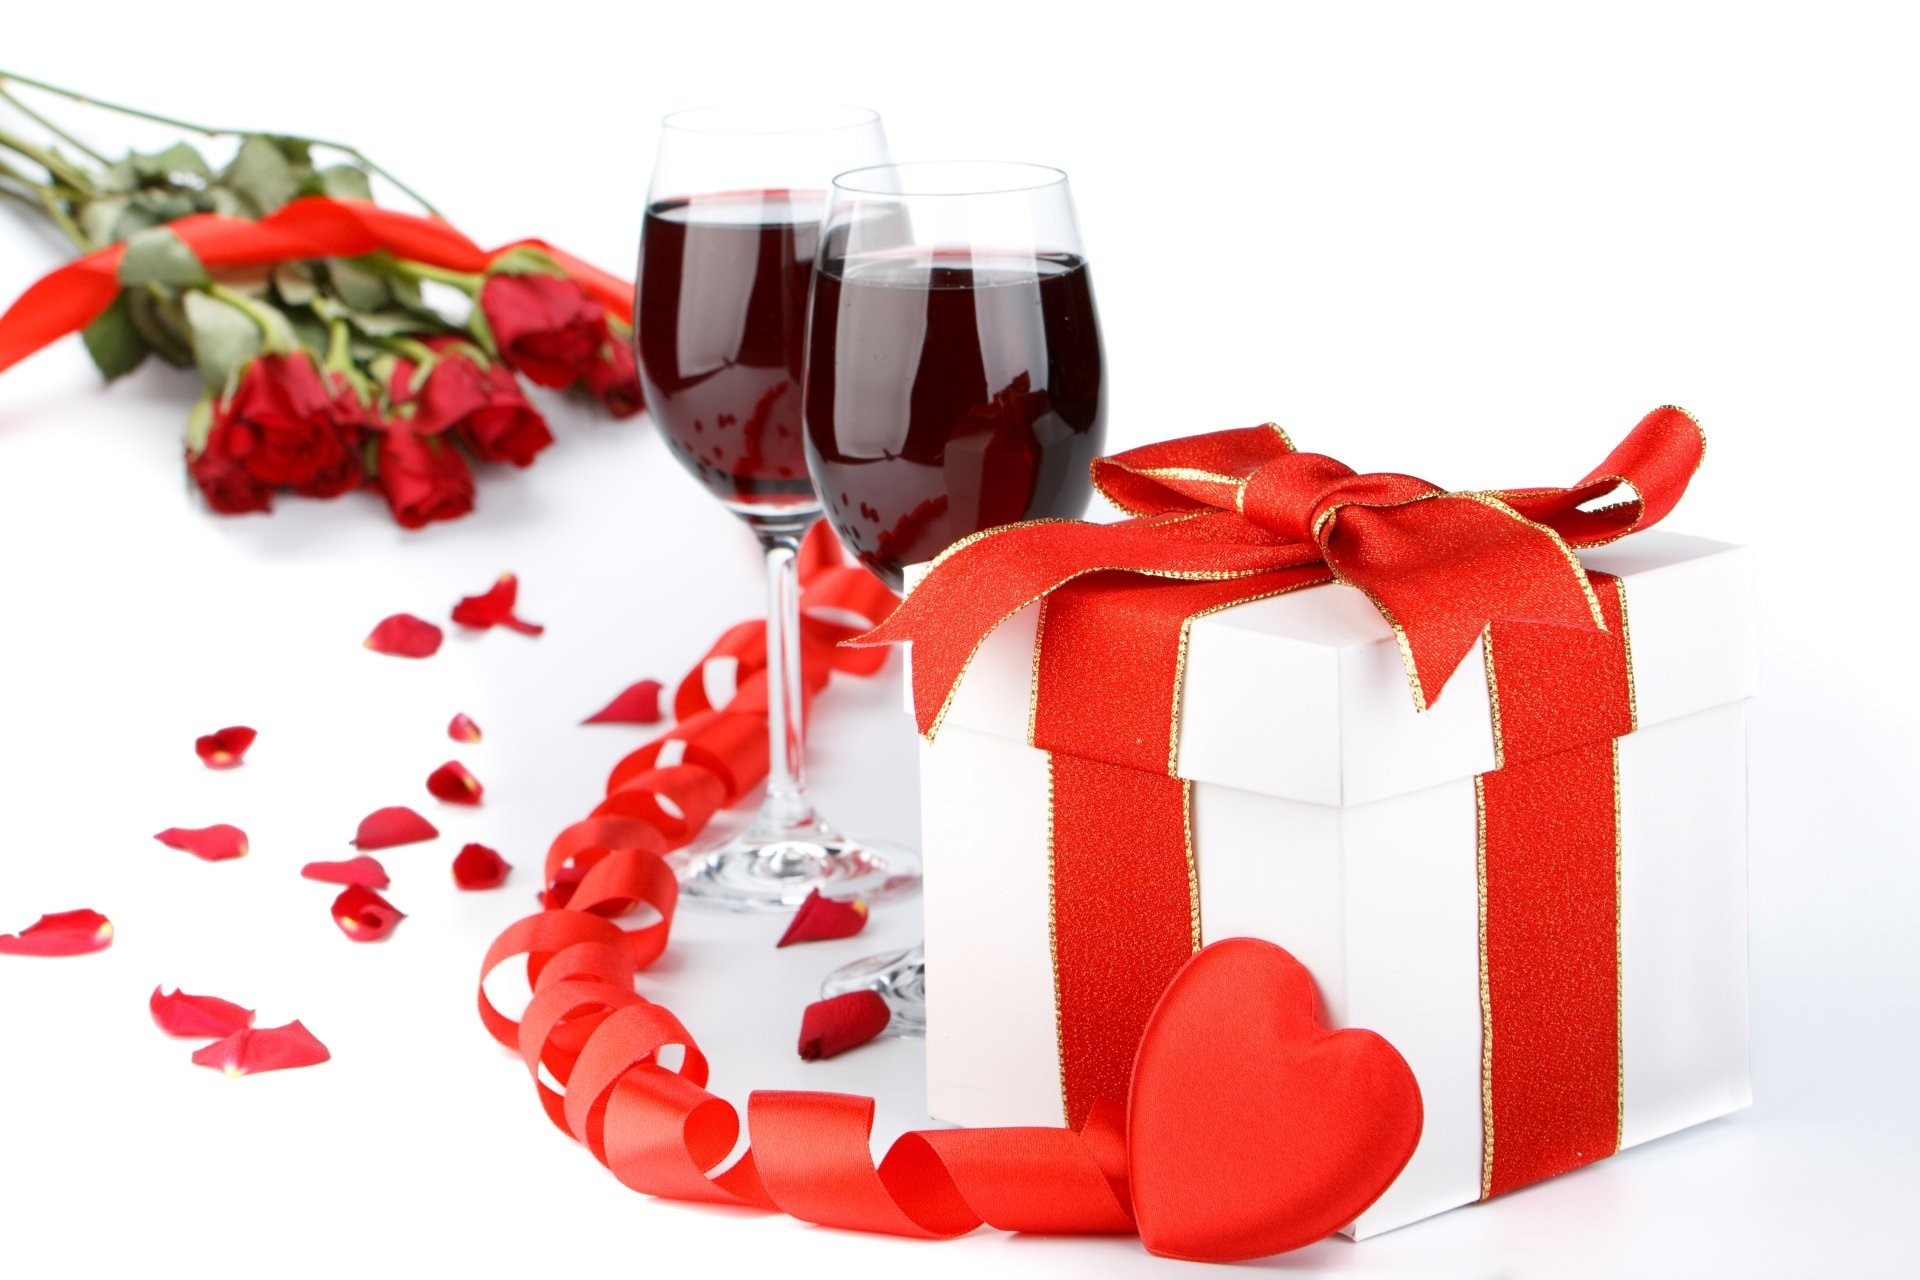 holidays wine valentine's day glasses gifts heart belt food photo